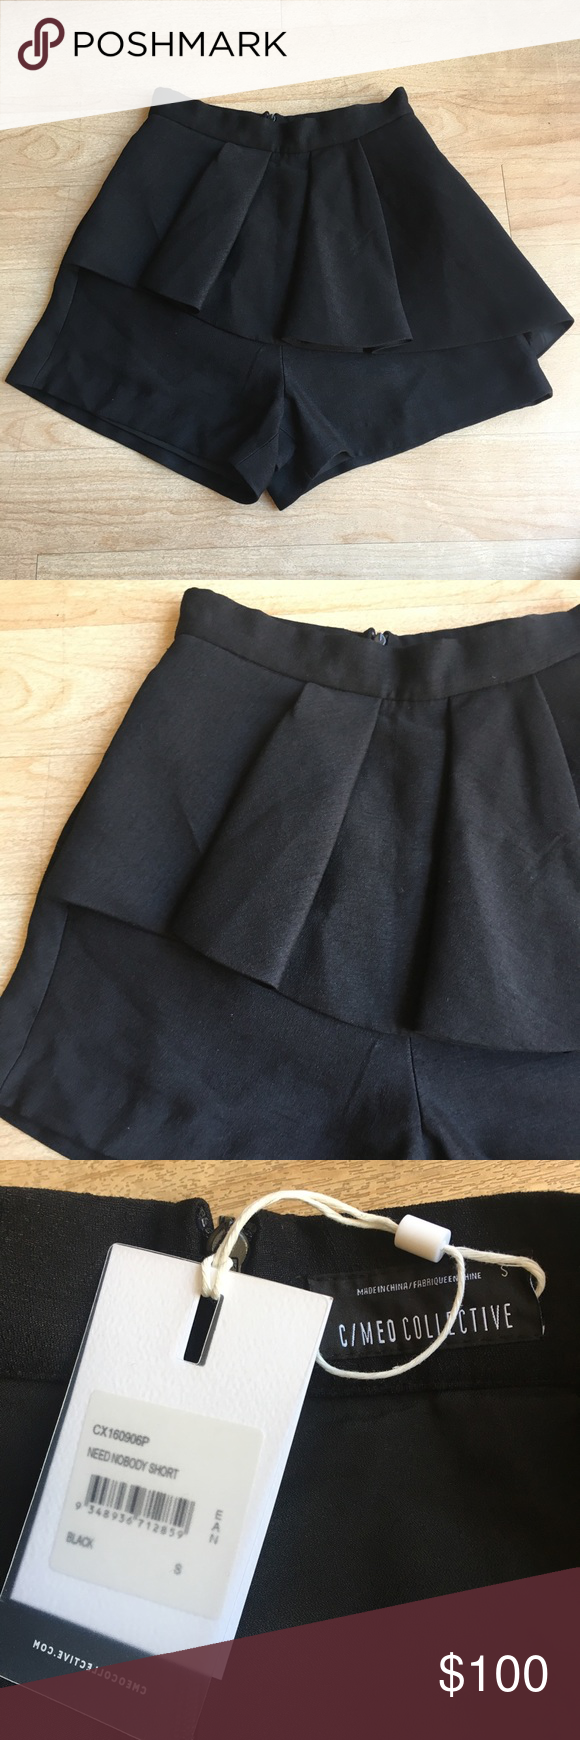 Nwt cmeo collective need nobody shorts small nwt high rise shorts